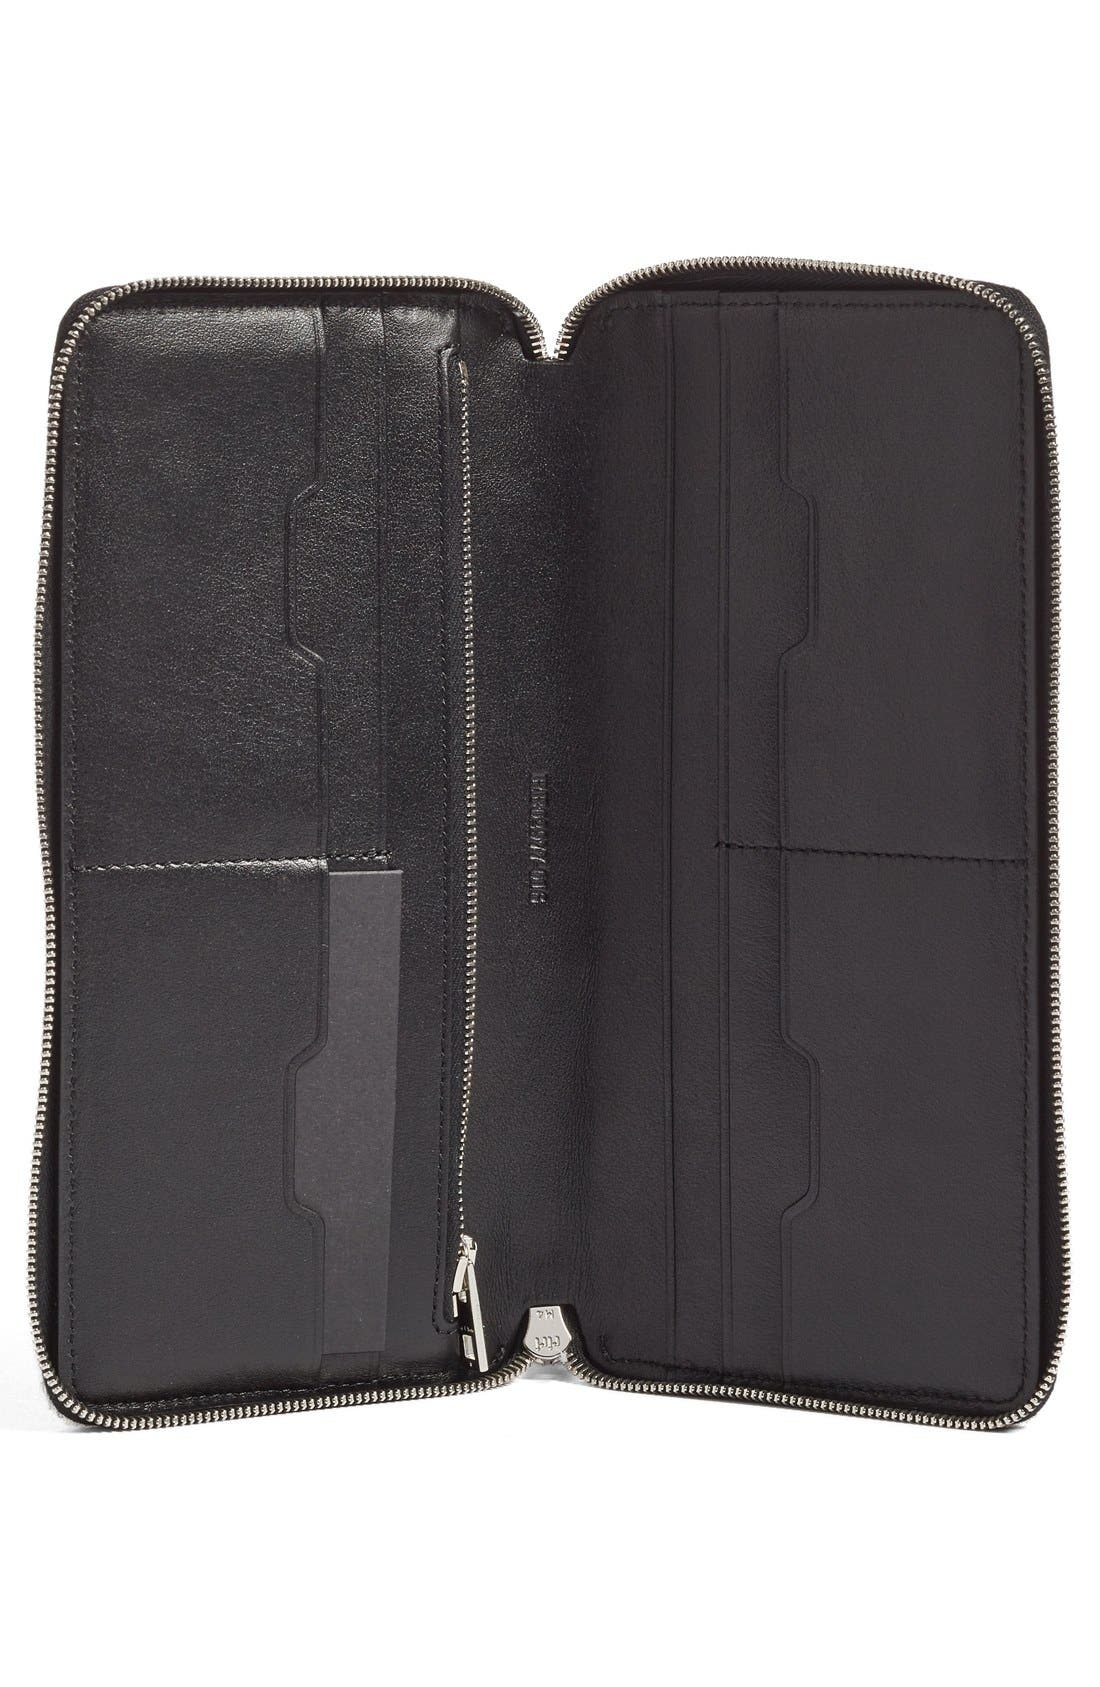 Leather Zip Around Wallet,                             Alternate thumbnail 2, color,                             001